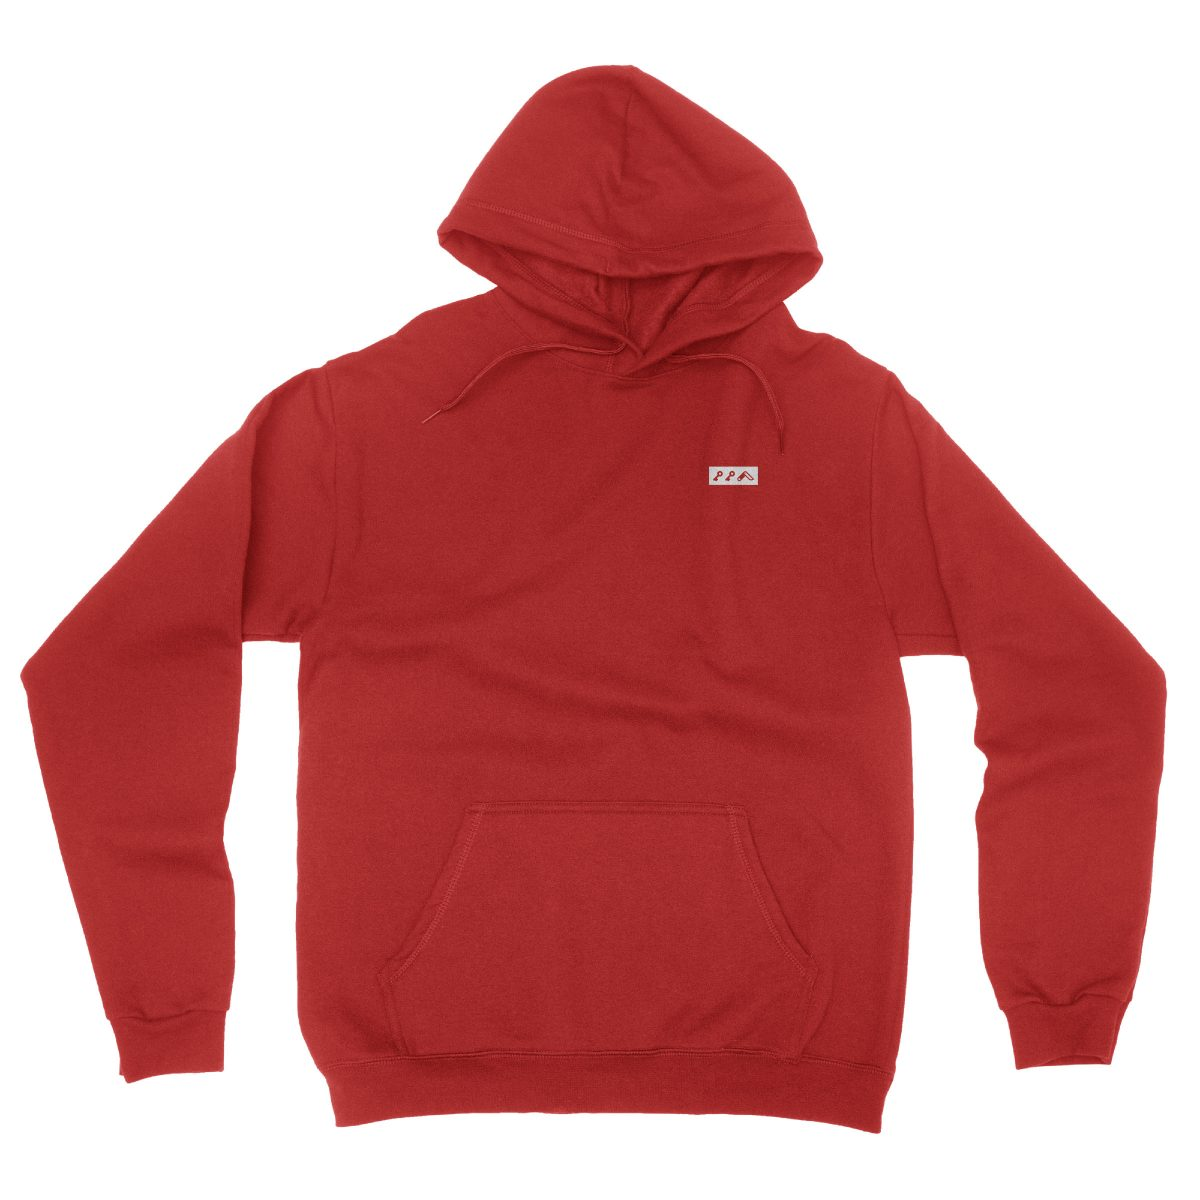 KIKICUTT white icon on an red classic and comfortable hoodie